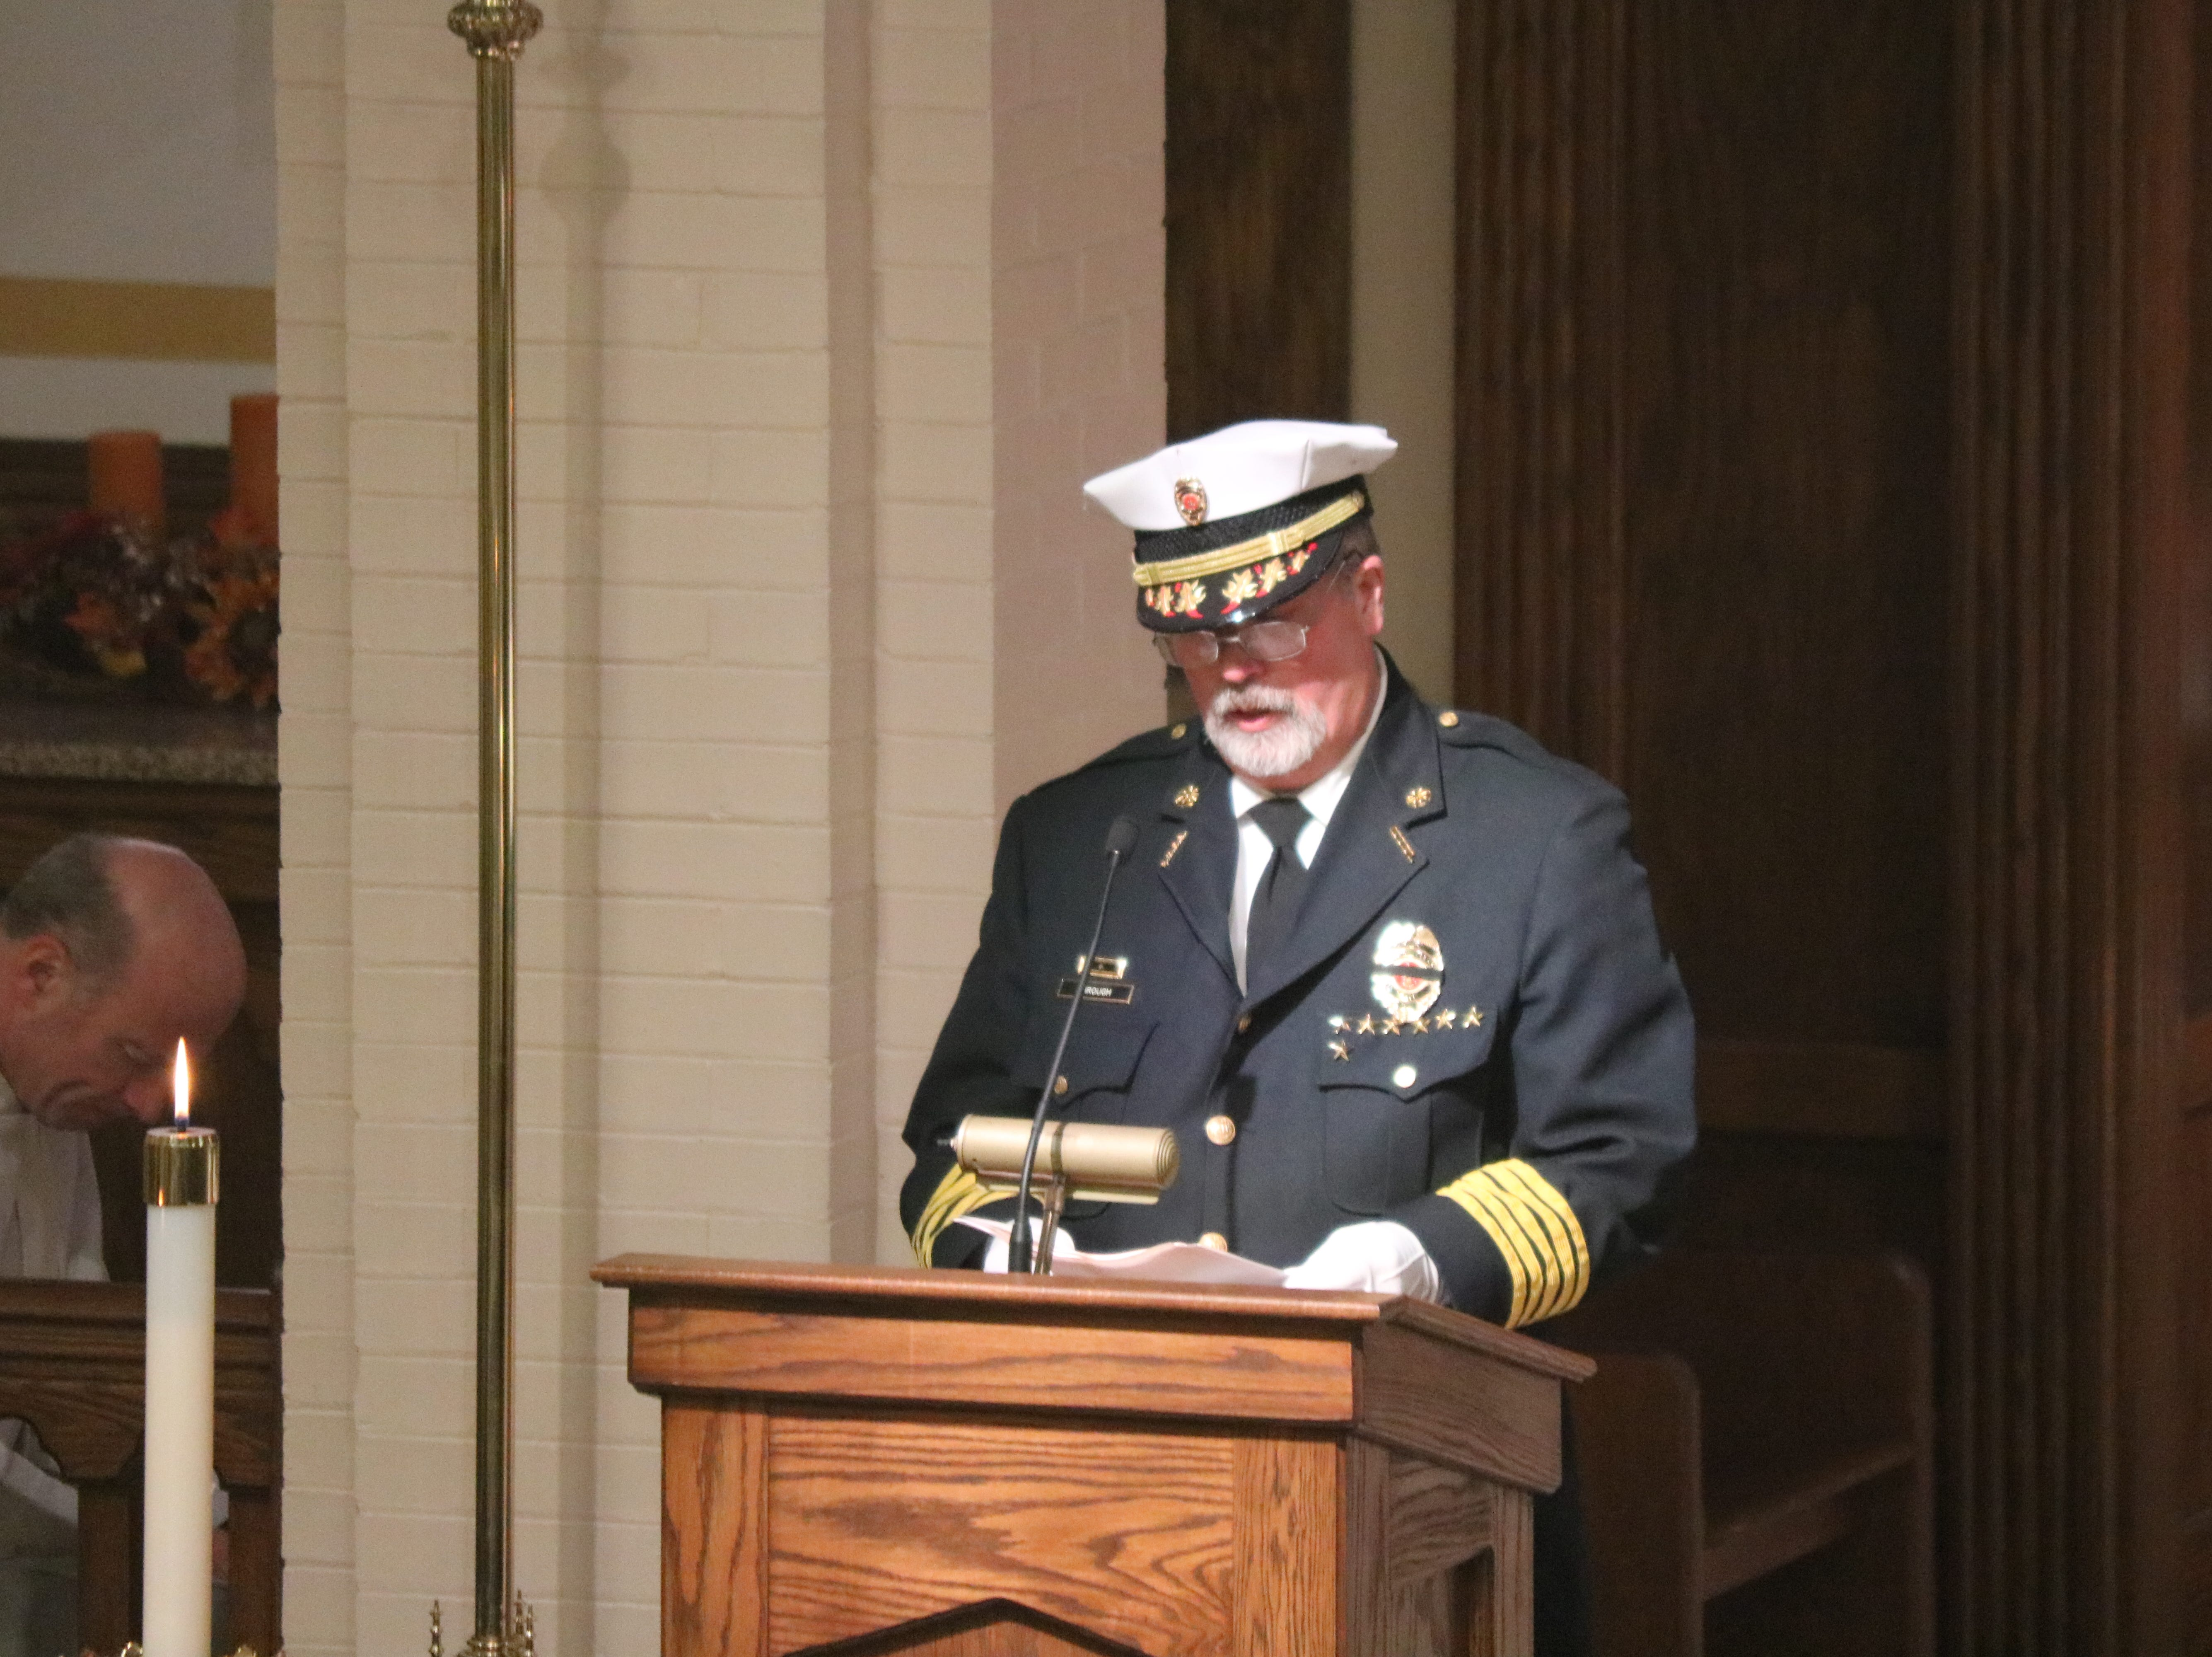 Carroll Township Fire Chief John Brough speaks at the funeral of firefighter Daniel Lucius in Oak Harbor on Saturday.